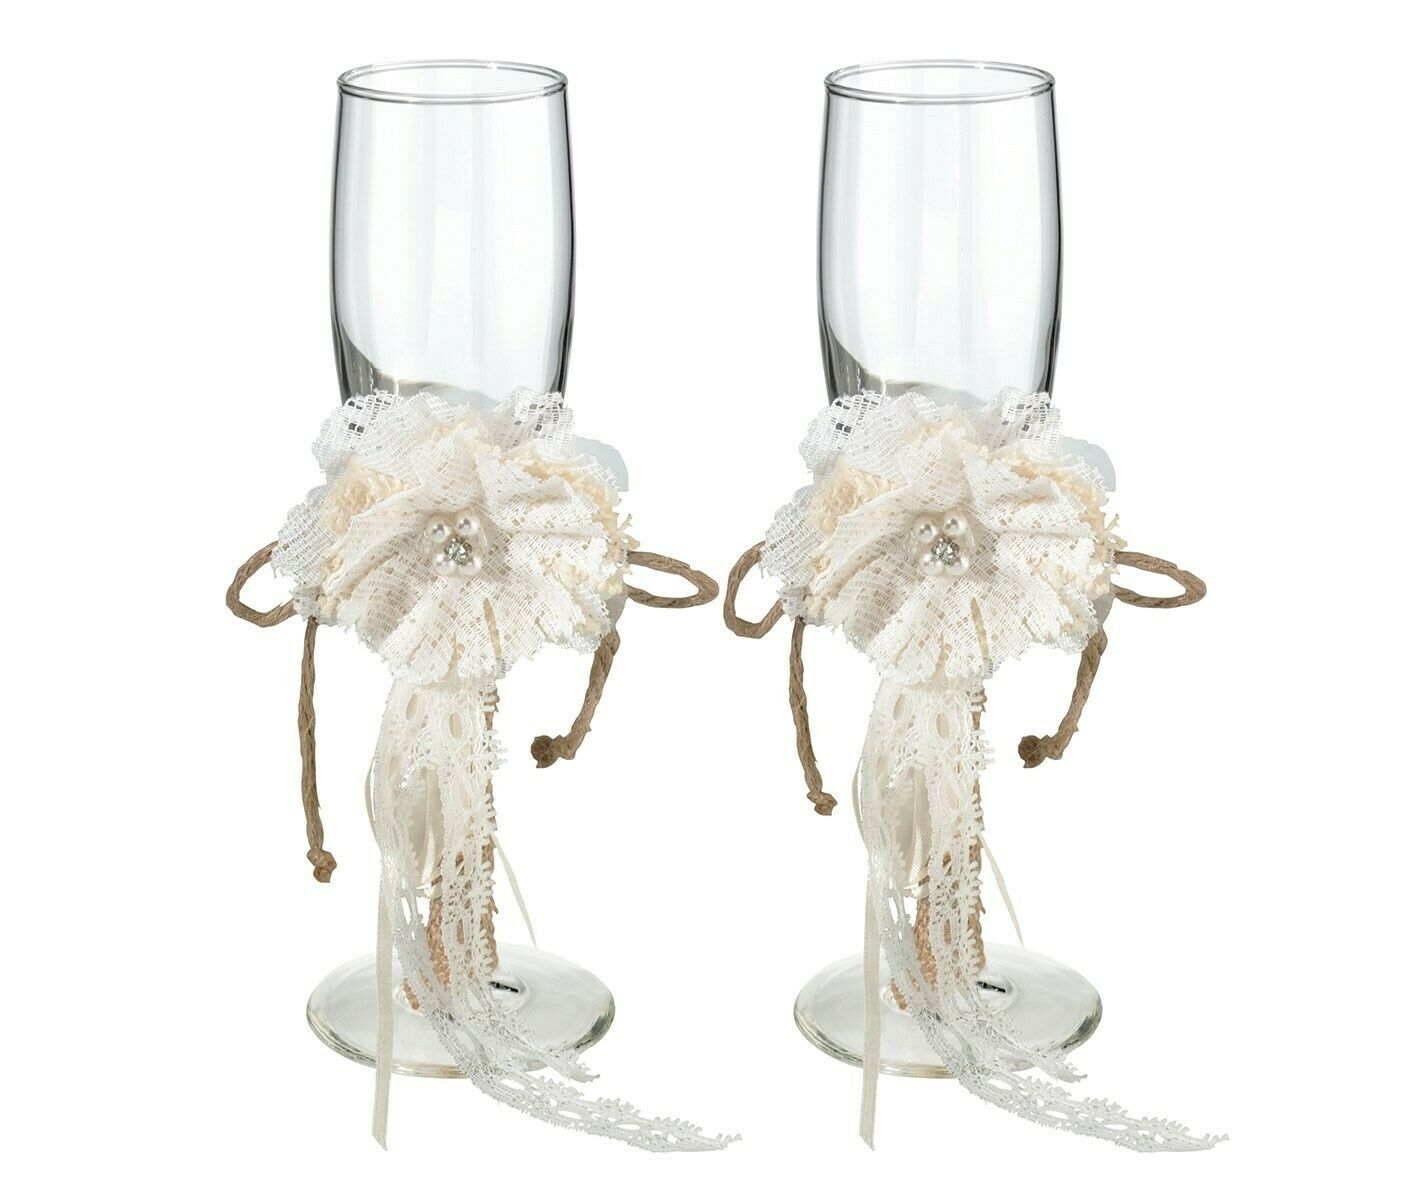 Vintage Rustic Wedding Burlap and Lace Toasting Glasses   Champagne Flutes